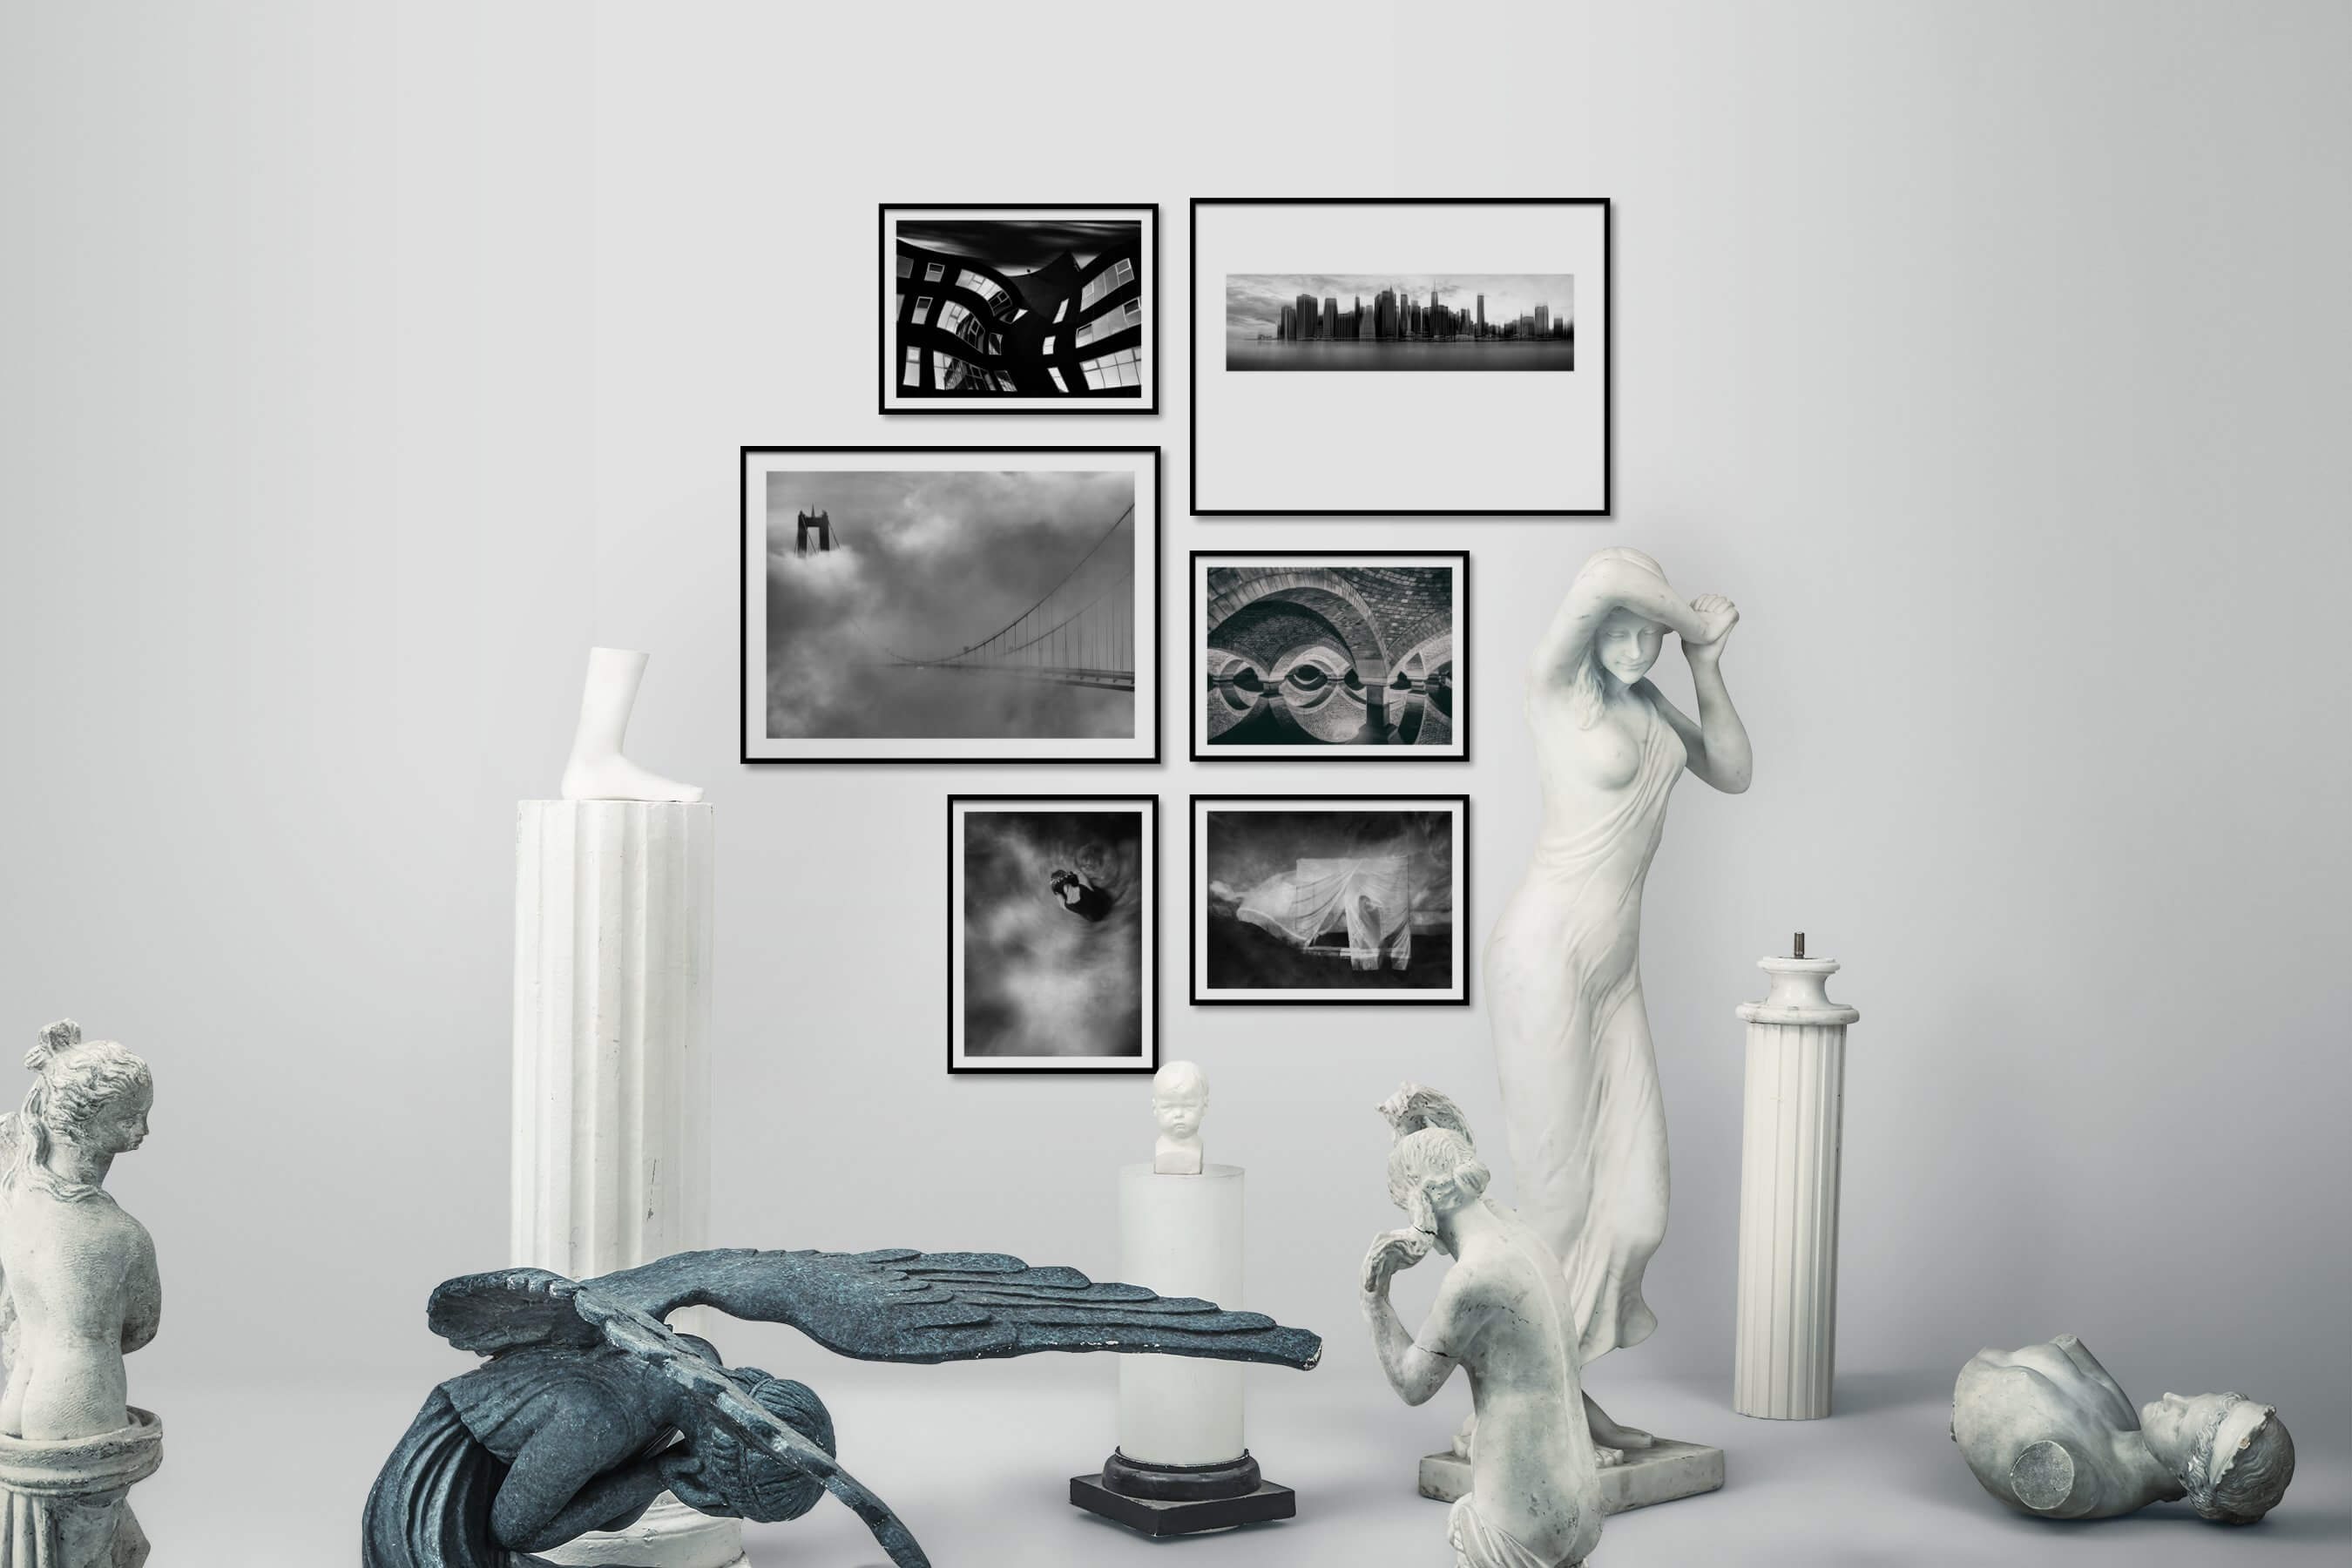 Gallery wall idea with six framed pictures arranged on a wall depicting Black & White, For the Moderate, City Life, Americana, For the Maximalist, and Artsy